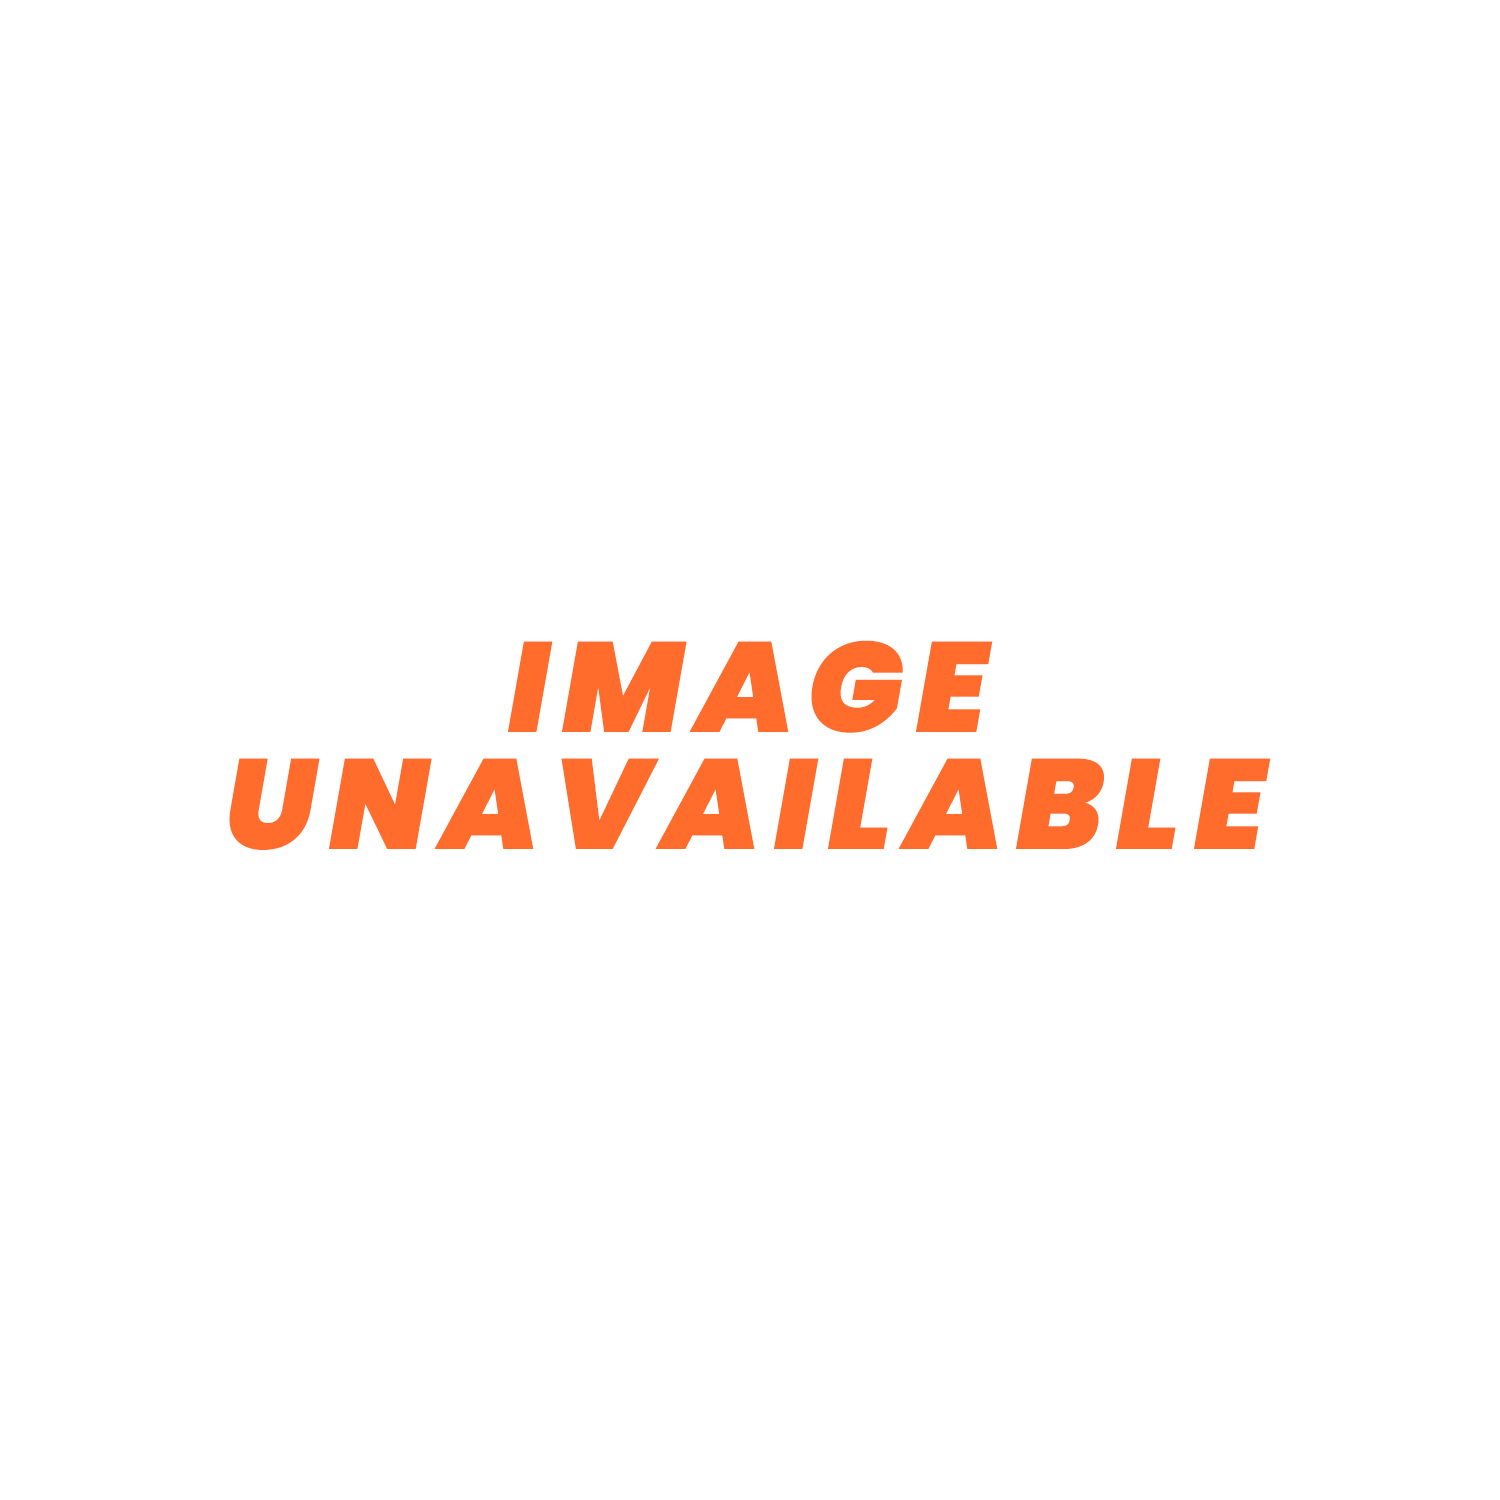 "SPAL Radiator Fan - 11.0"" (280mm) Push VA09-AP8/C-54S 832cfm"